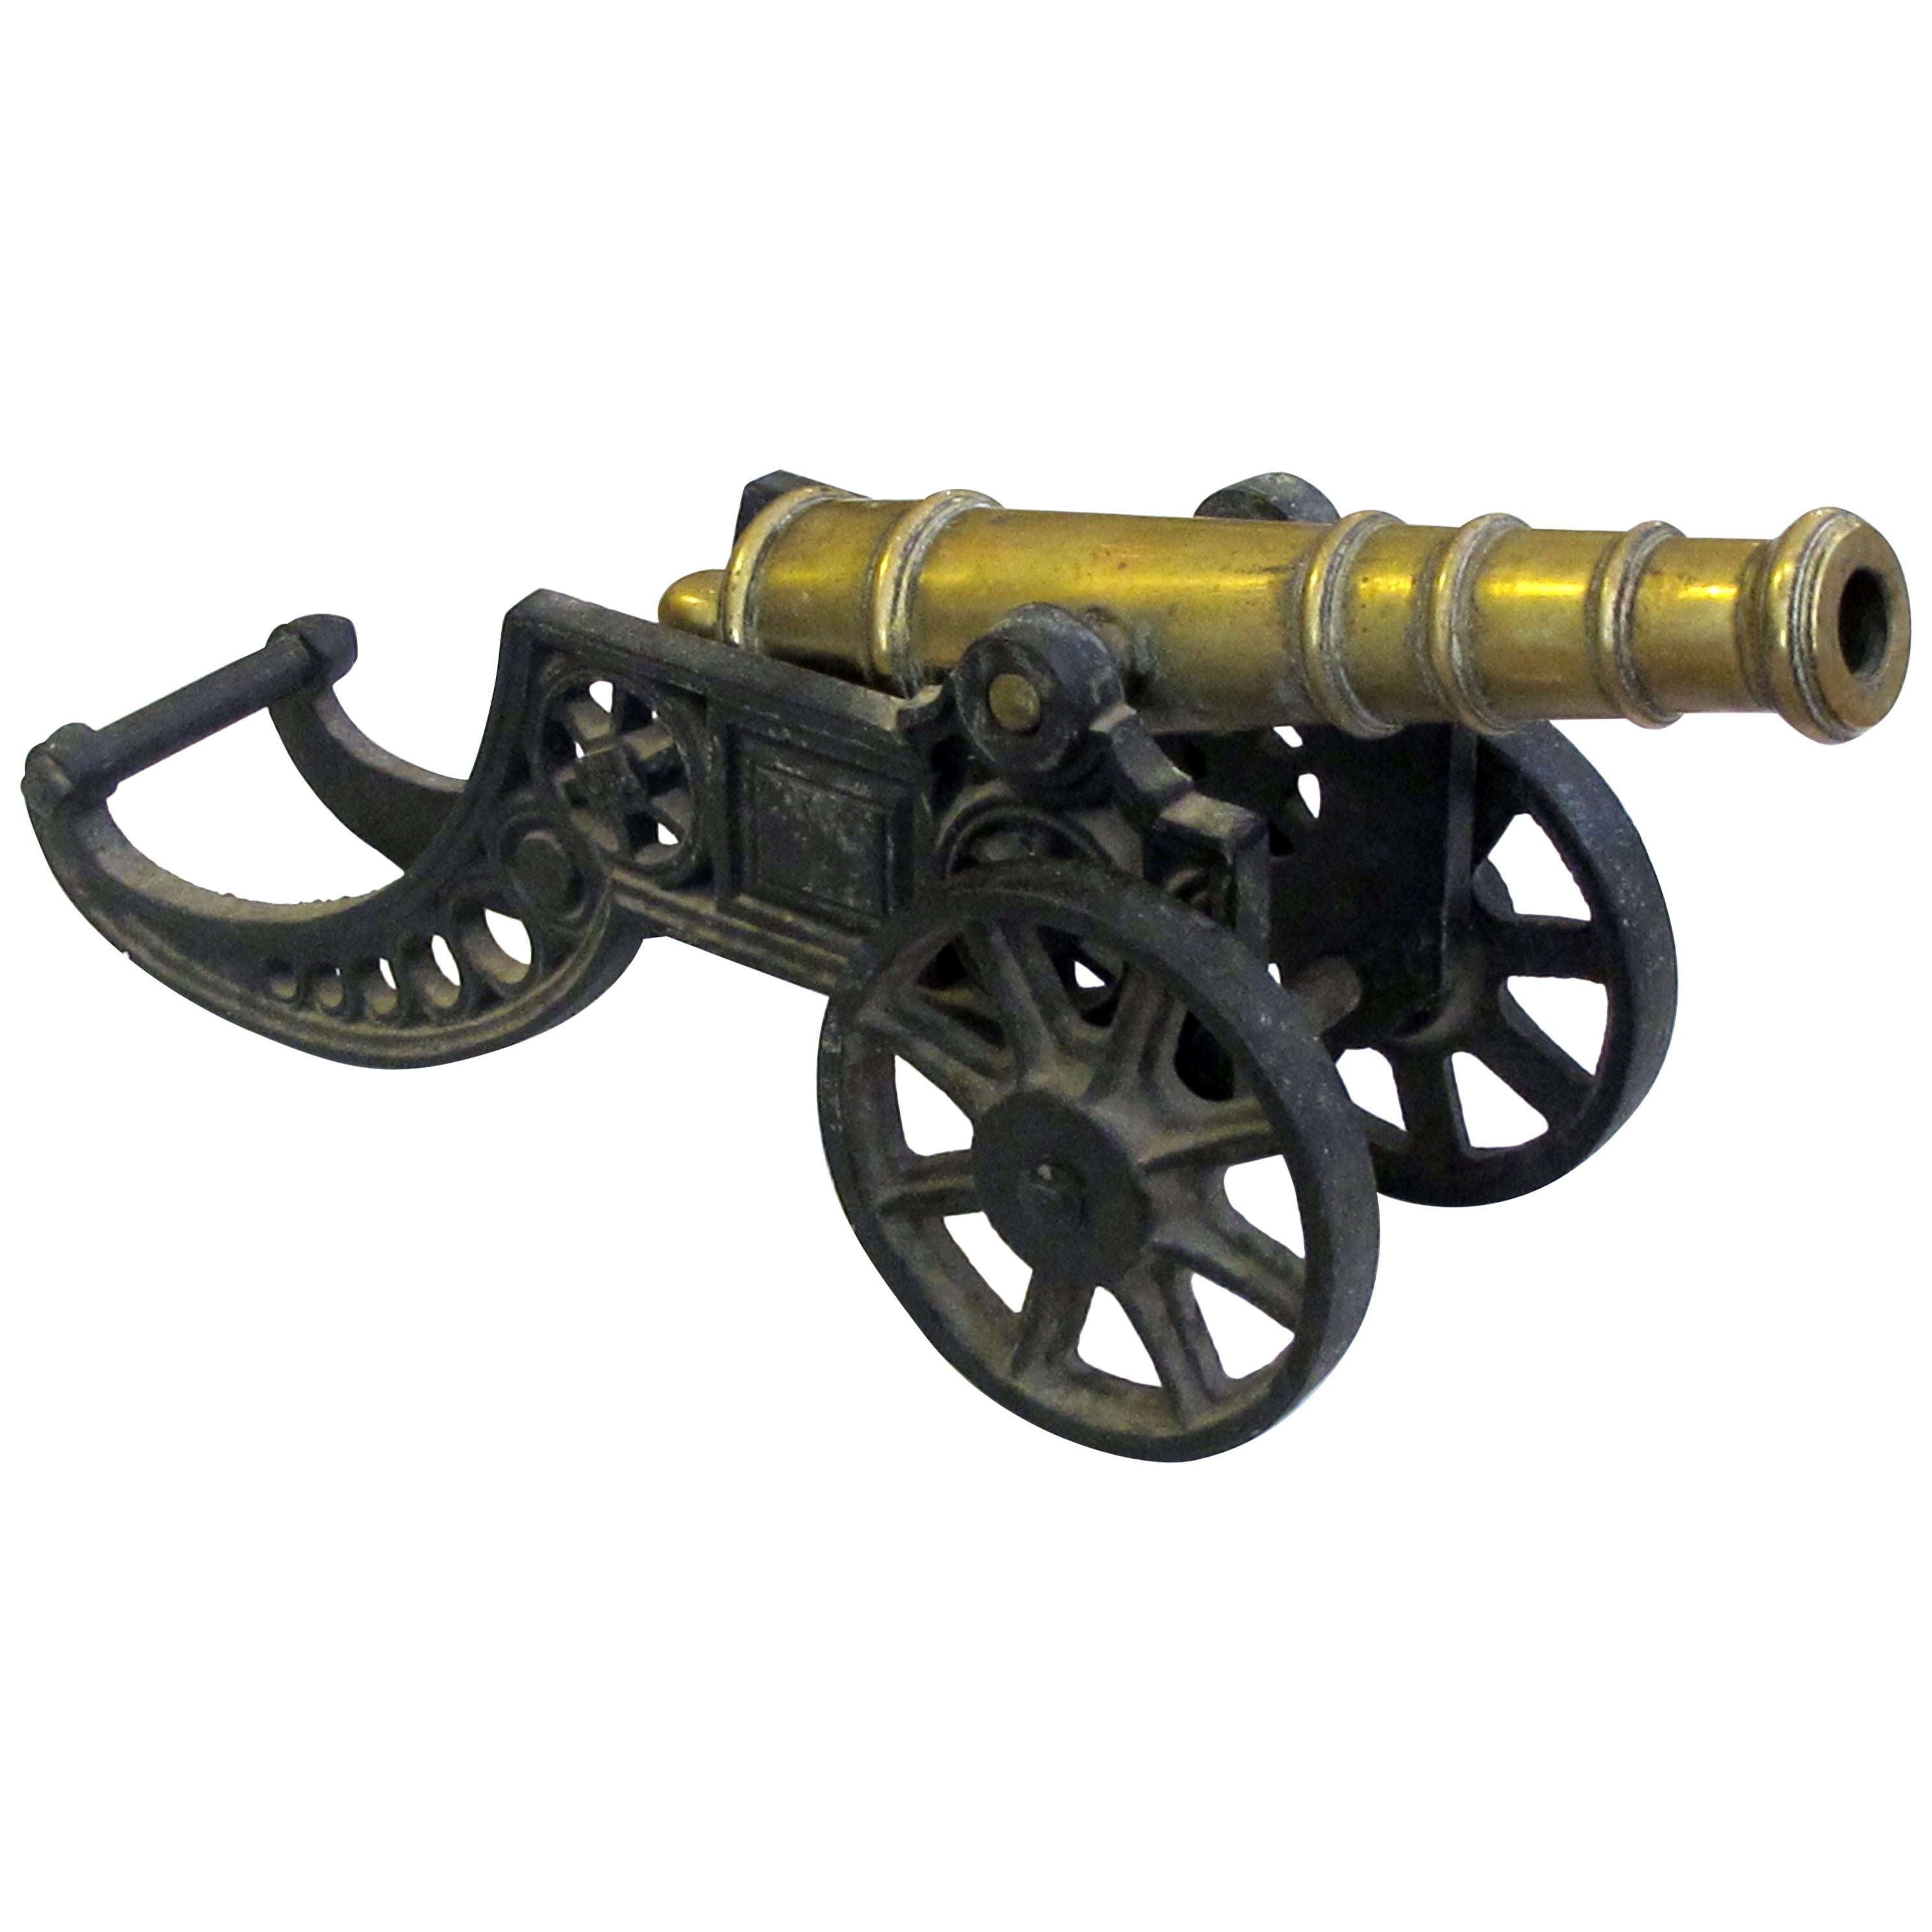 Cannons - 132 For Sale on 1stdibs